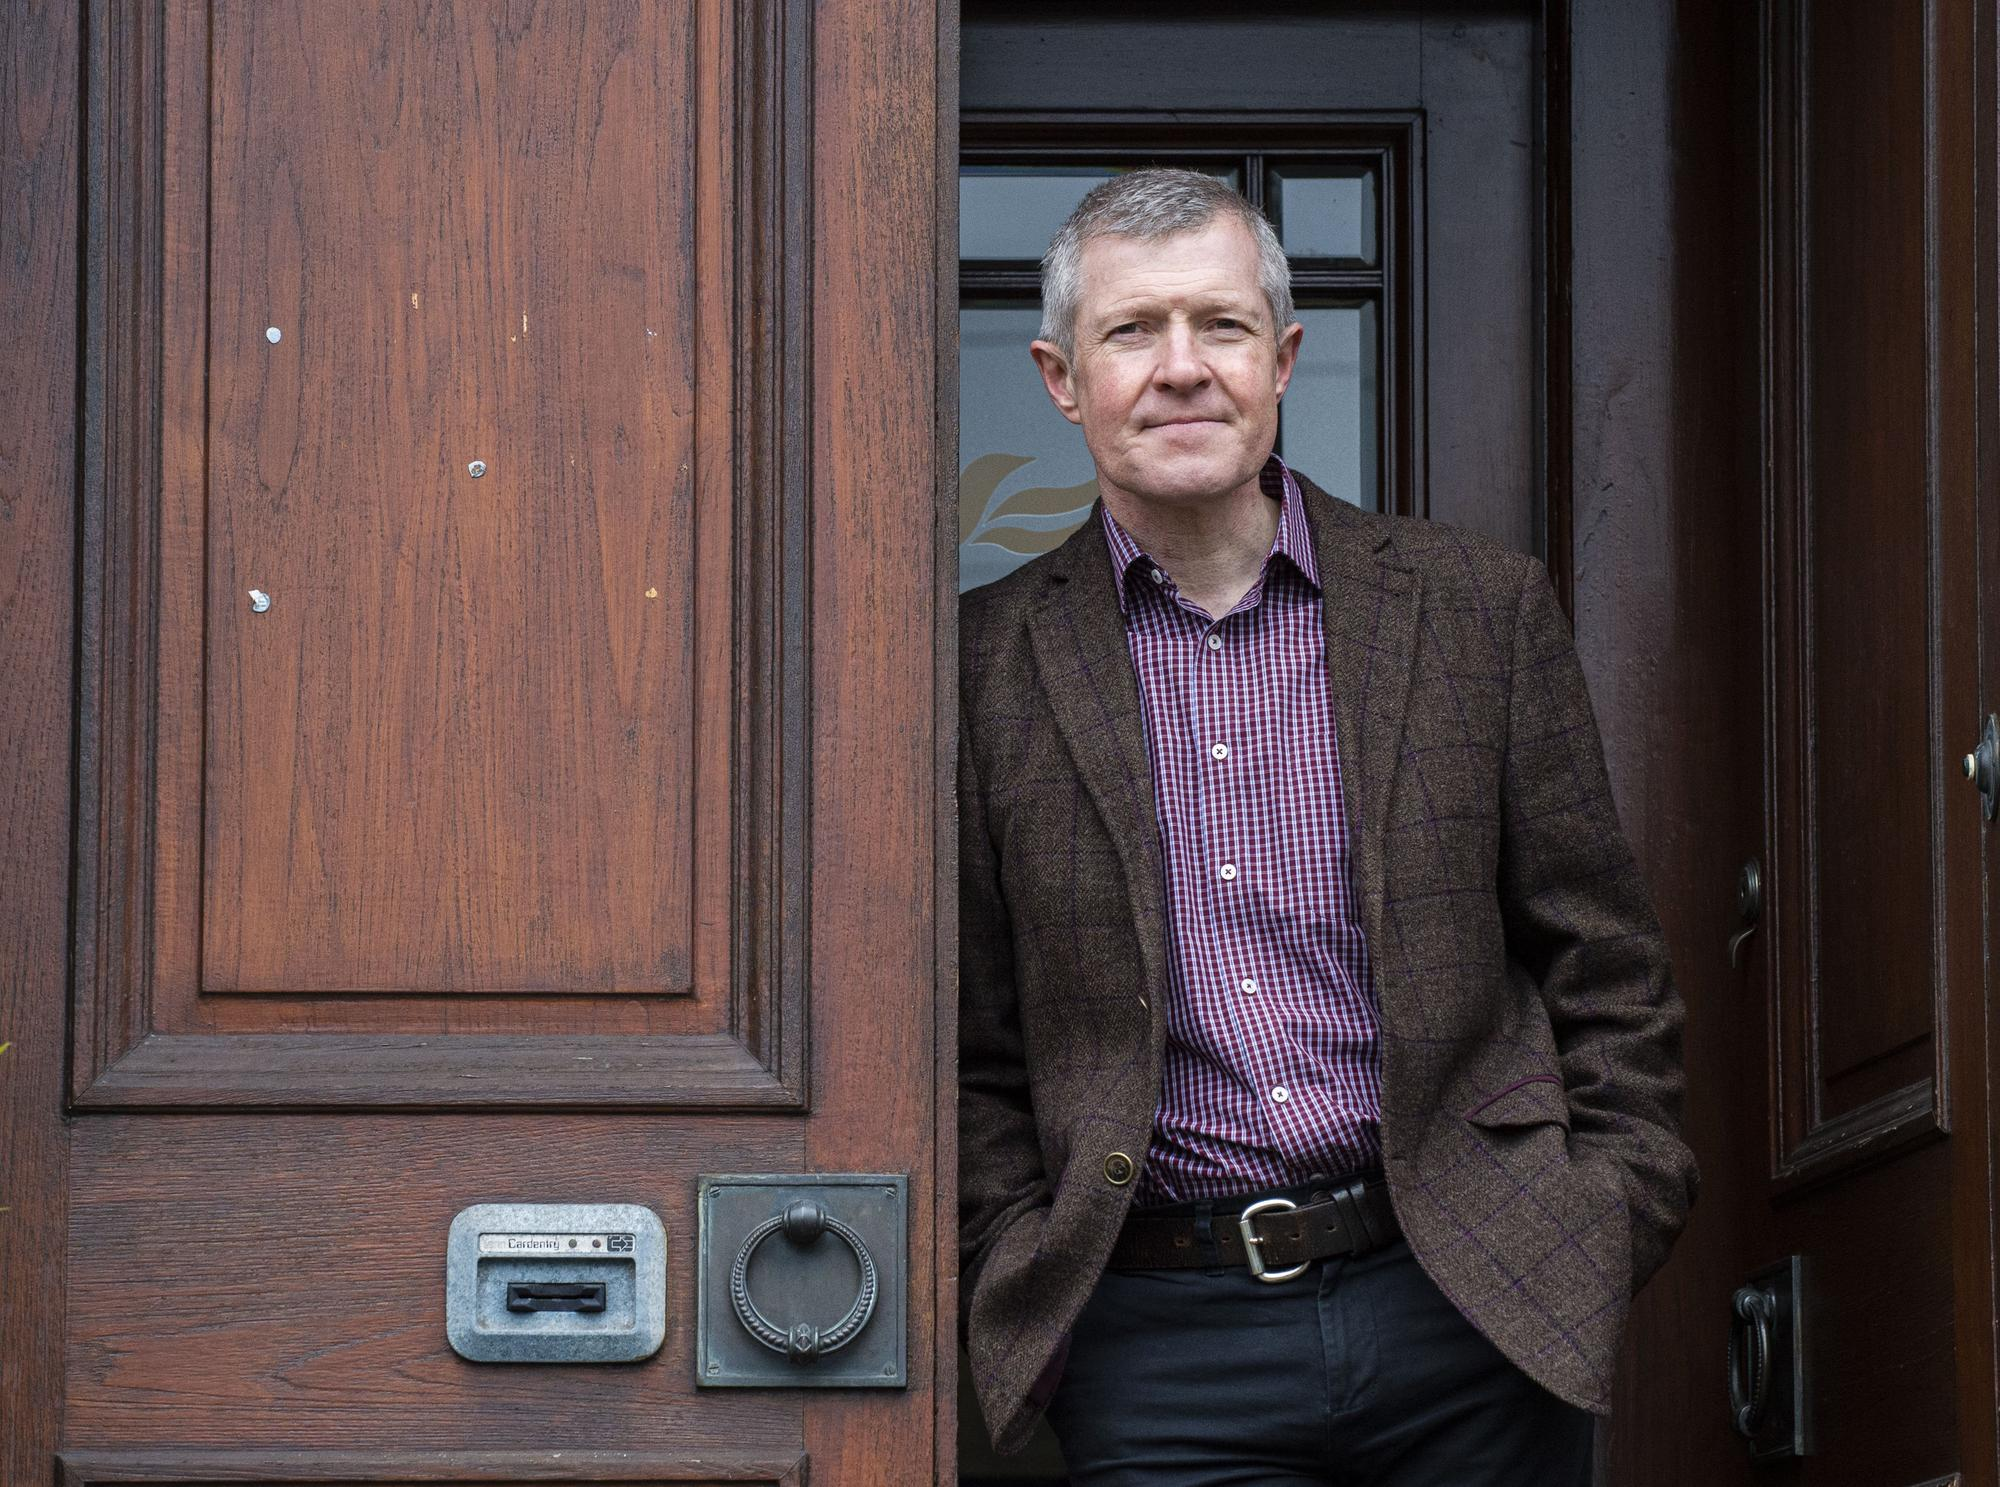 Scottish Election 2021: Nicola Sturgeon has 'lost control' of independence  movement, says Willie Rennie | The Scotsman